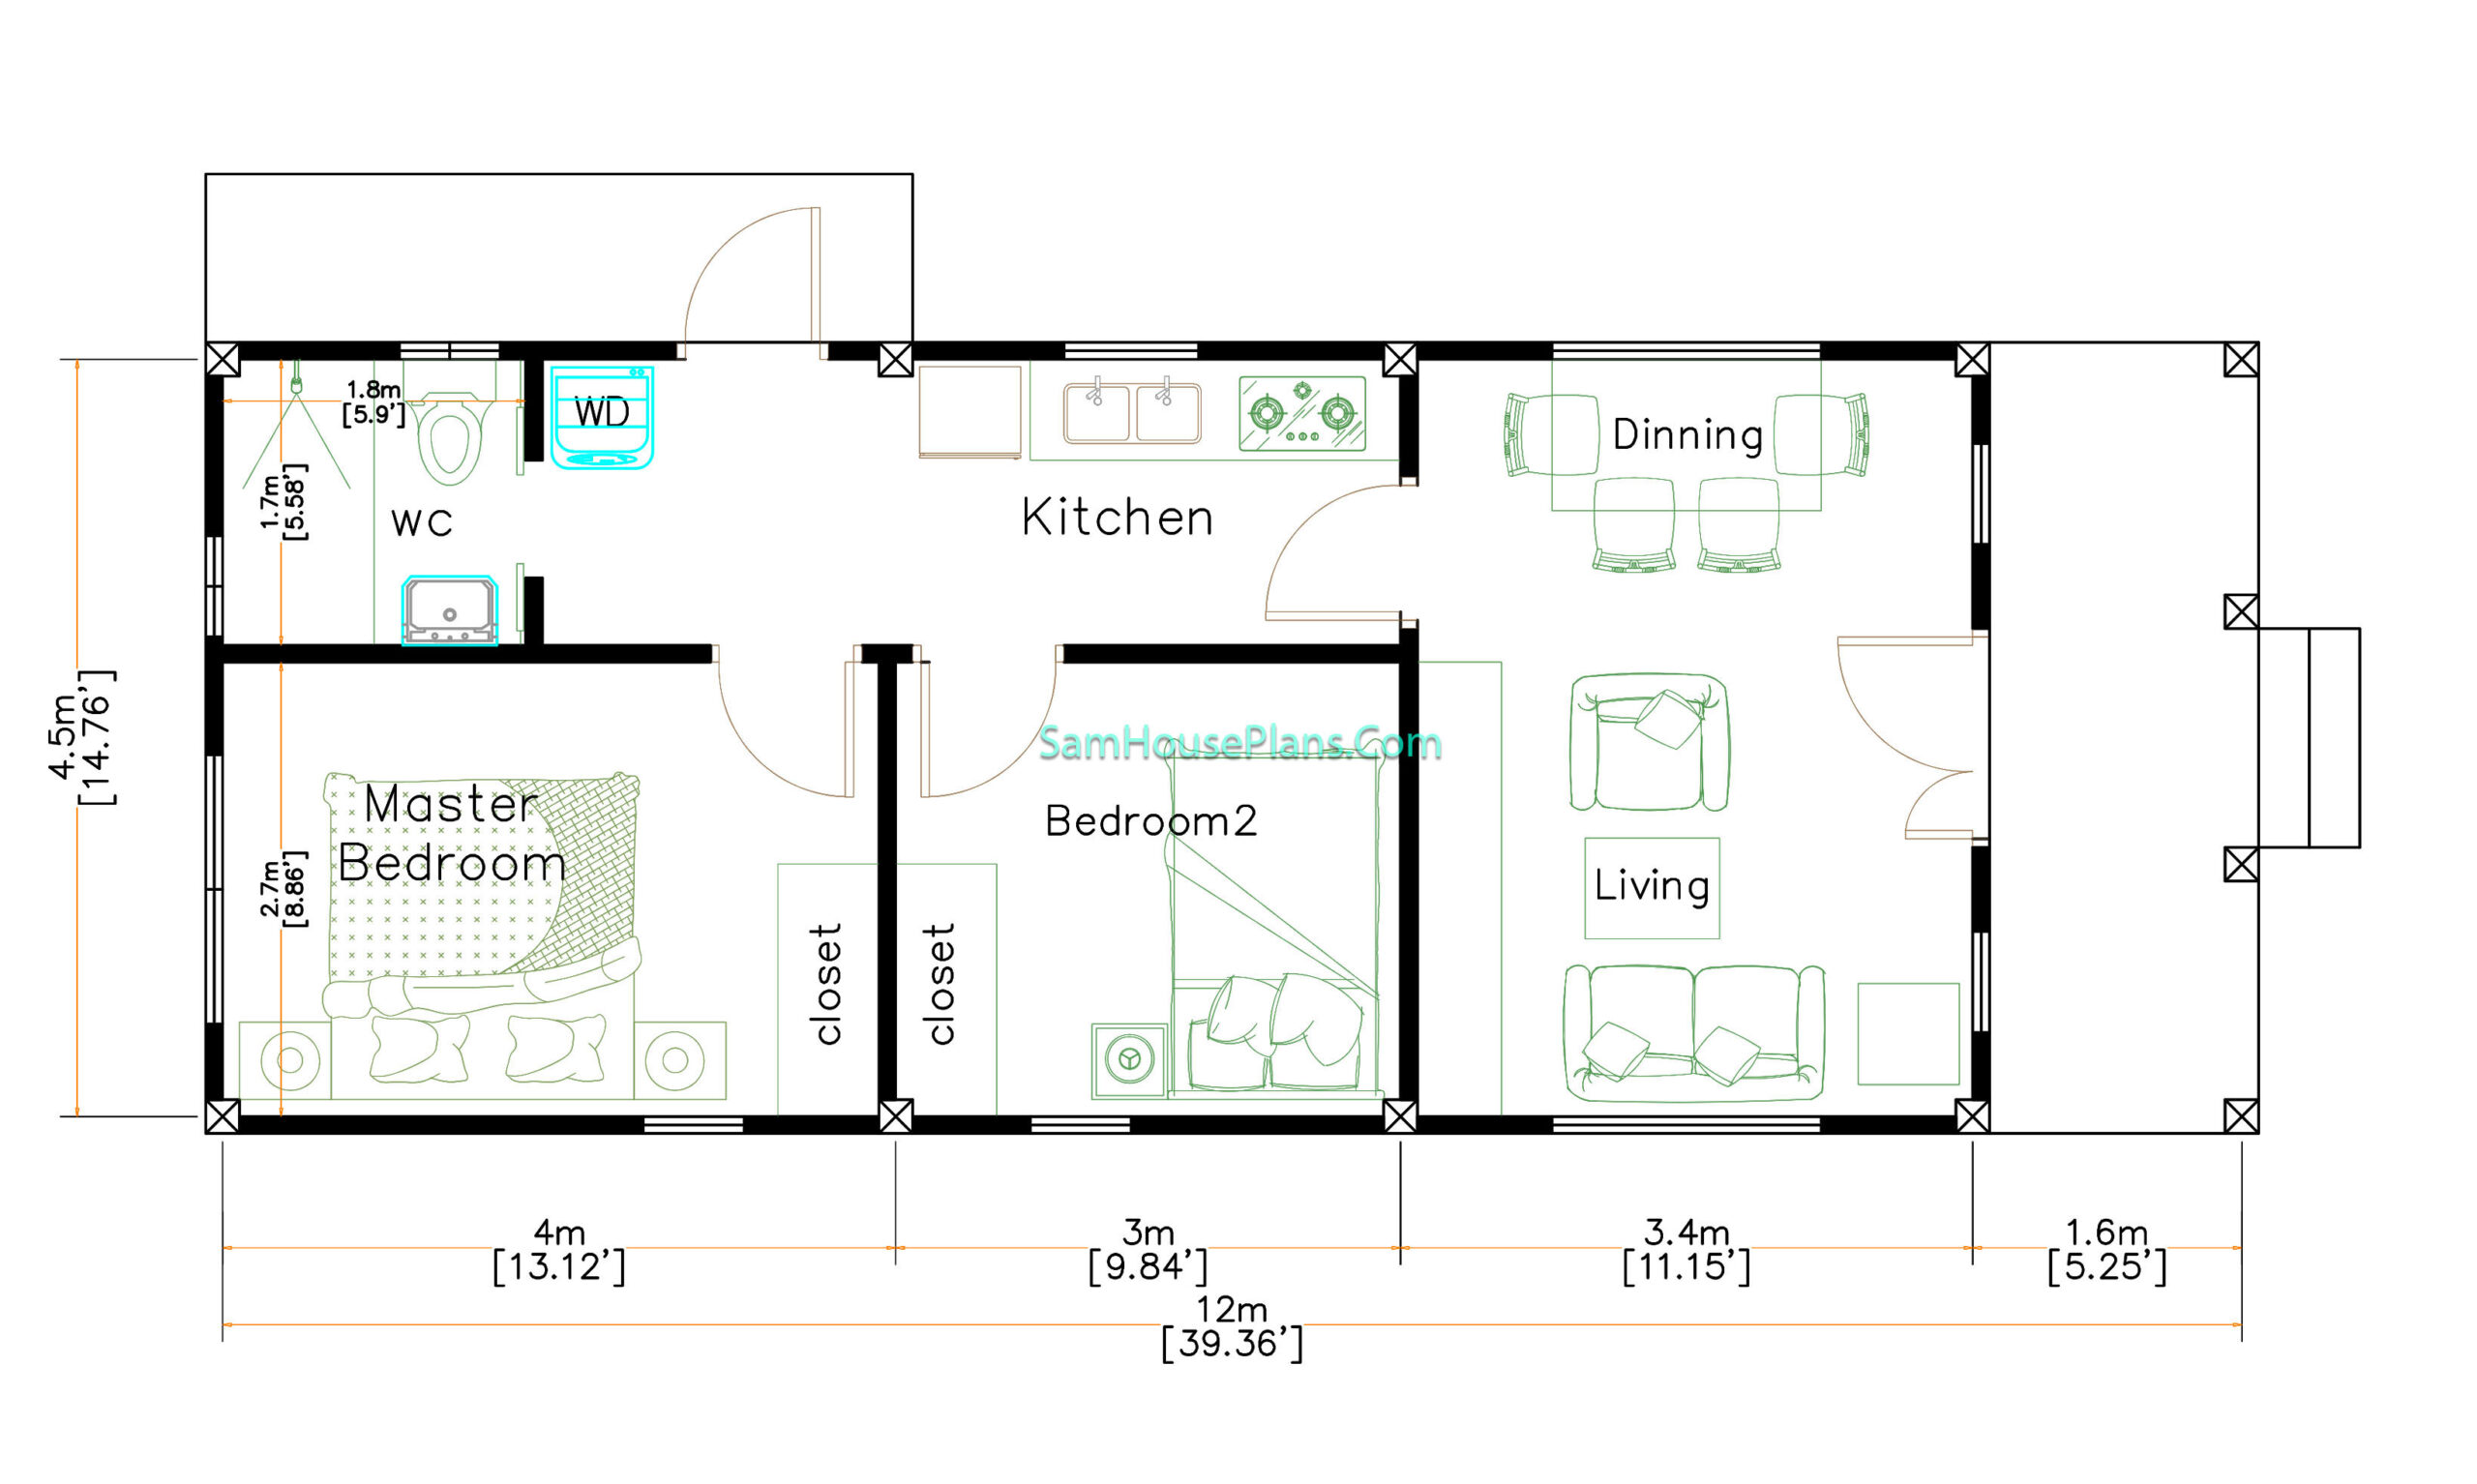 4.5x12 Small House Design 2 Bedrooms Shed Roof Layout floor plan